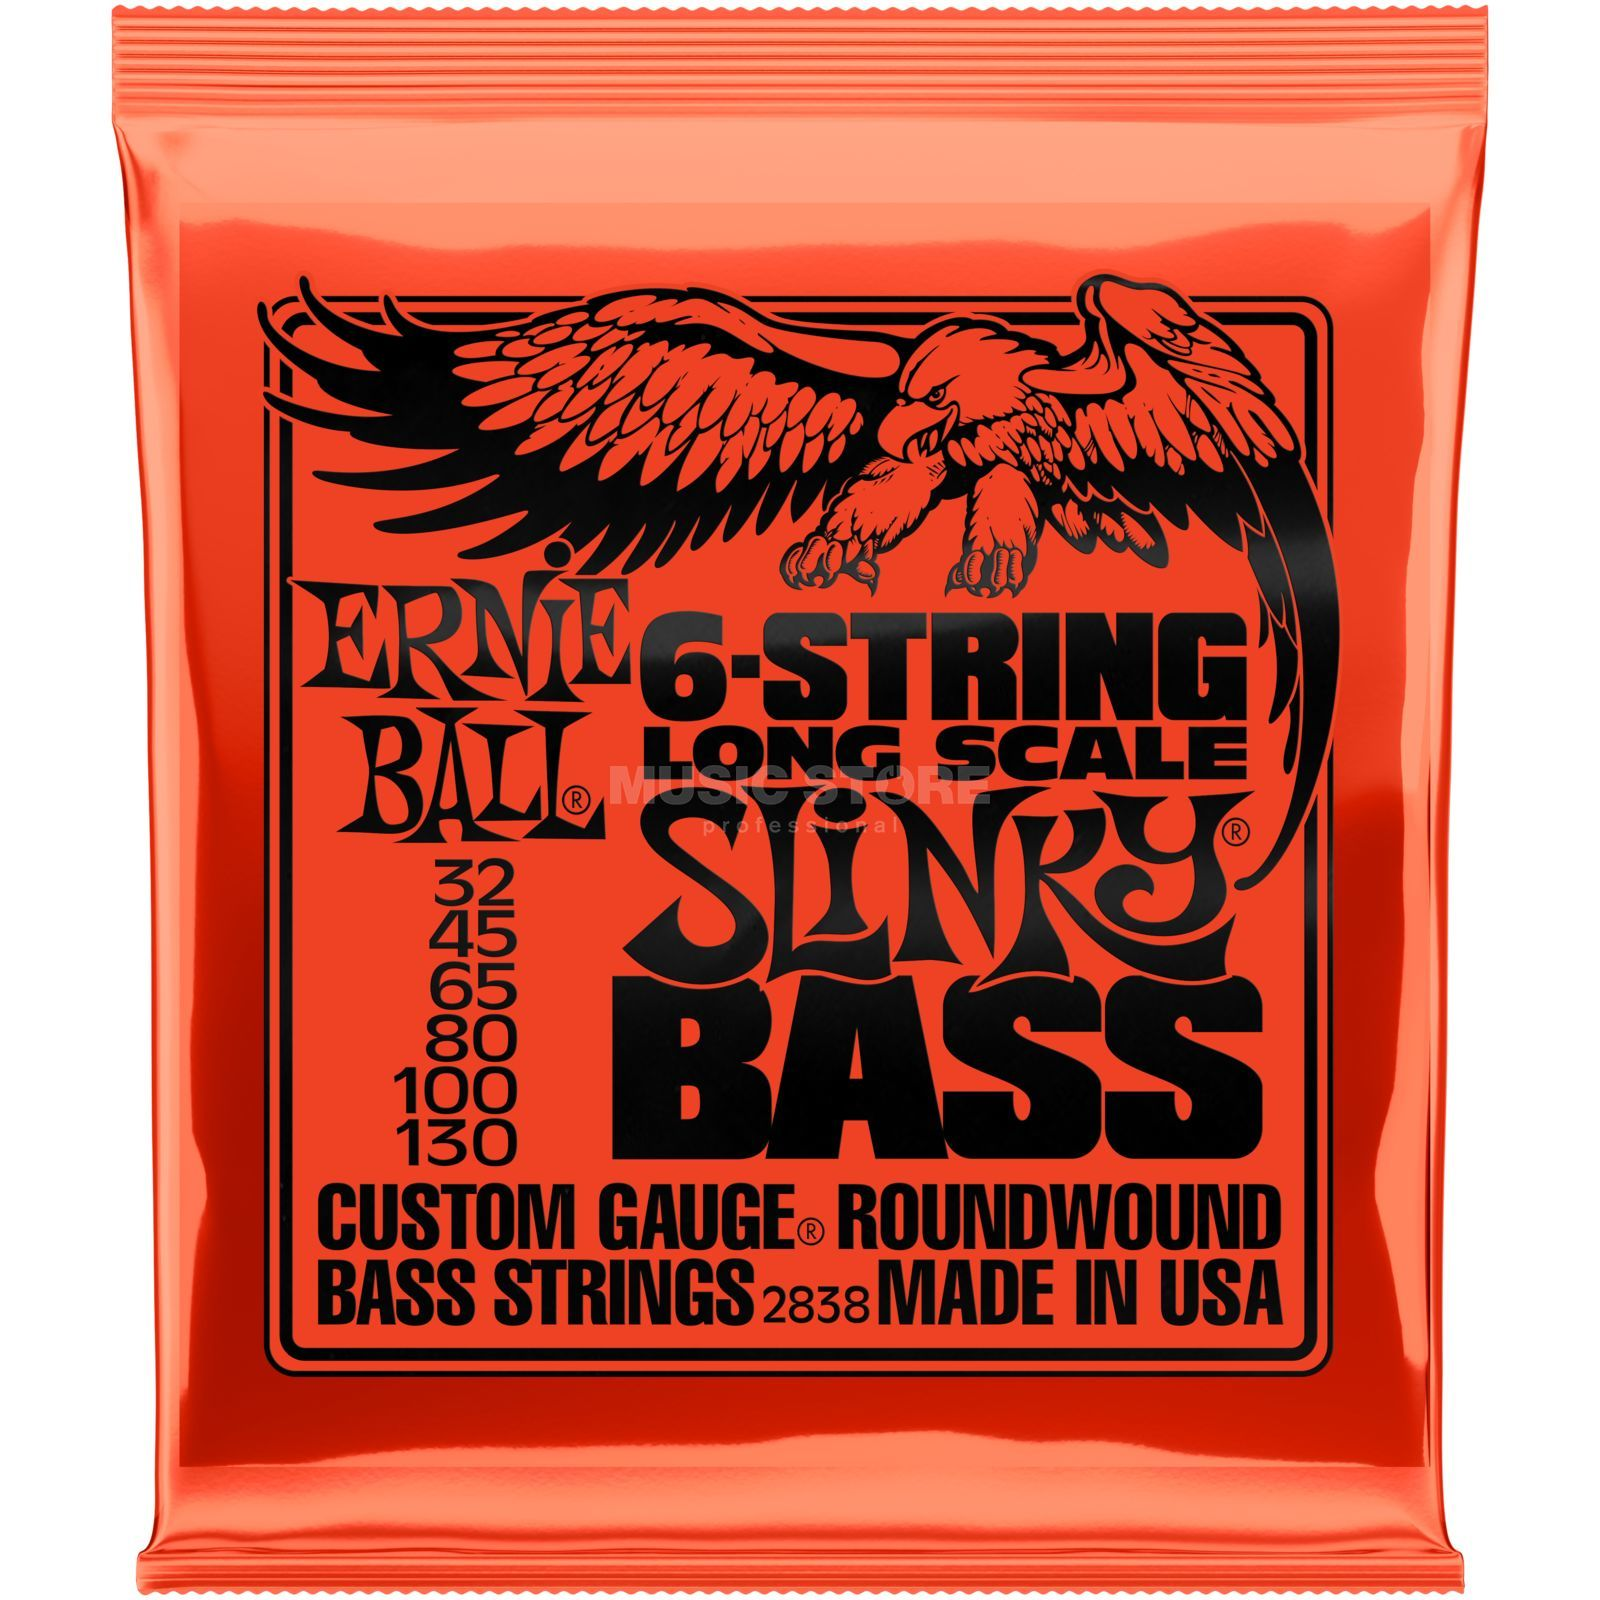 Ernie Ball Bass Strings 32-130 6-String Nickel Wound Изображение товара